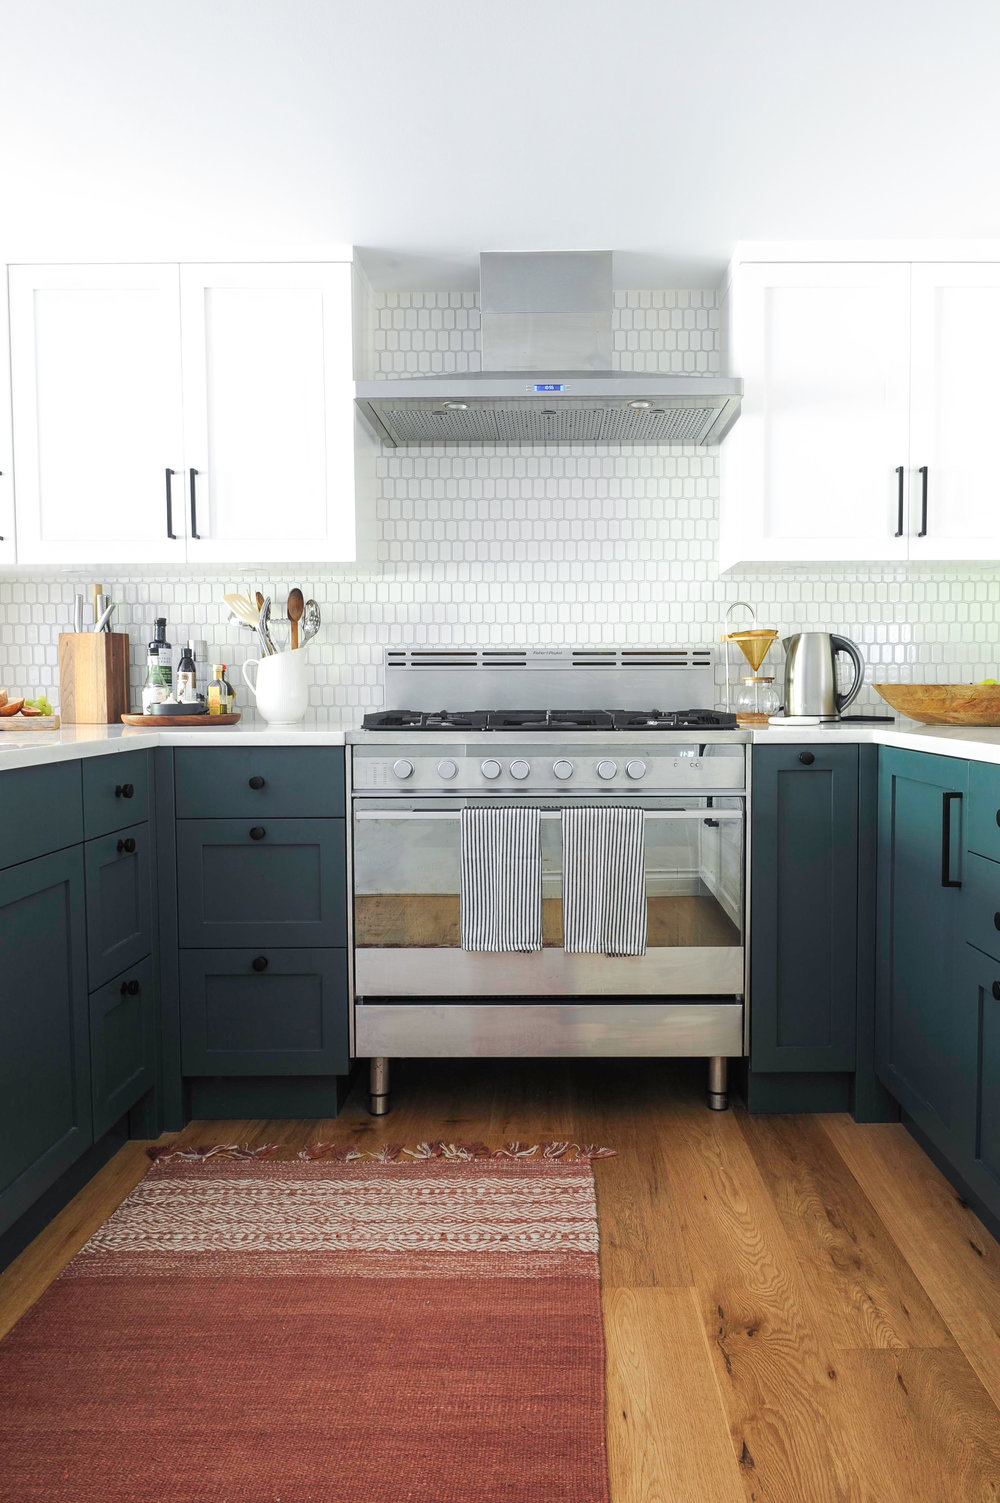 The kitchen centres around the stainless steel gas cooker and range hood, displayed against the decorative white tiles and blue cabinets.